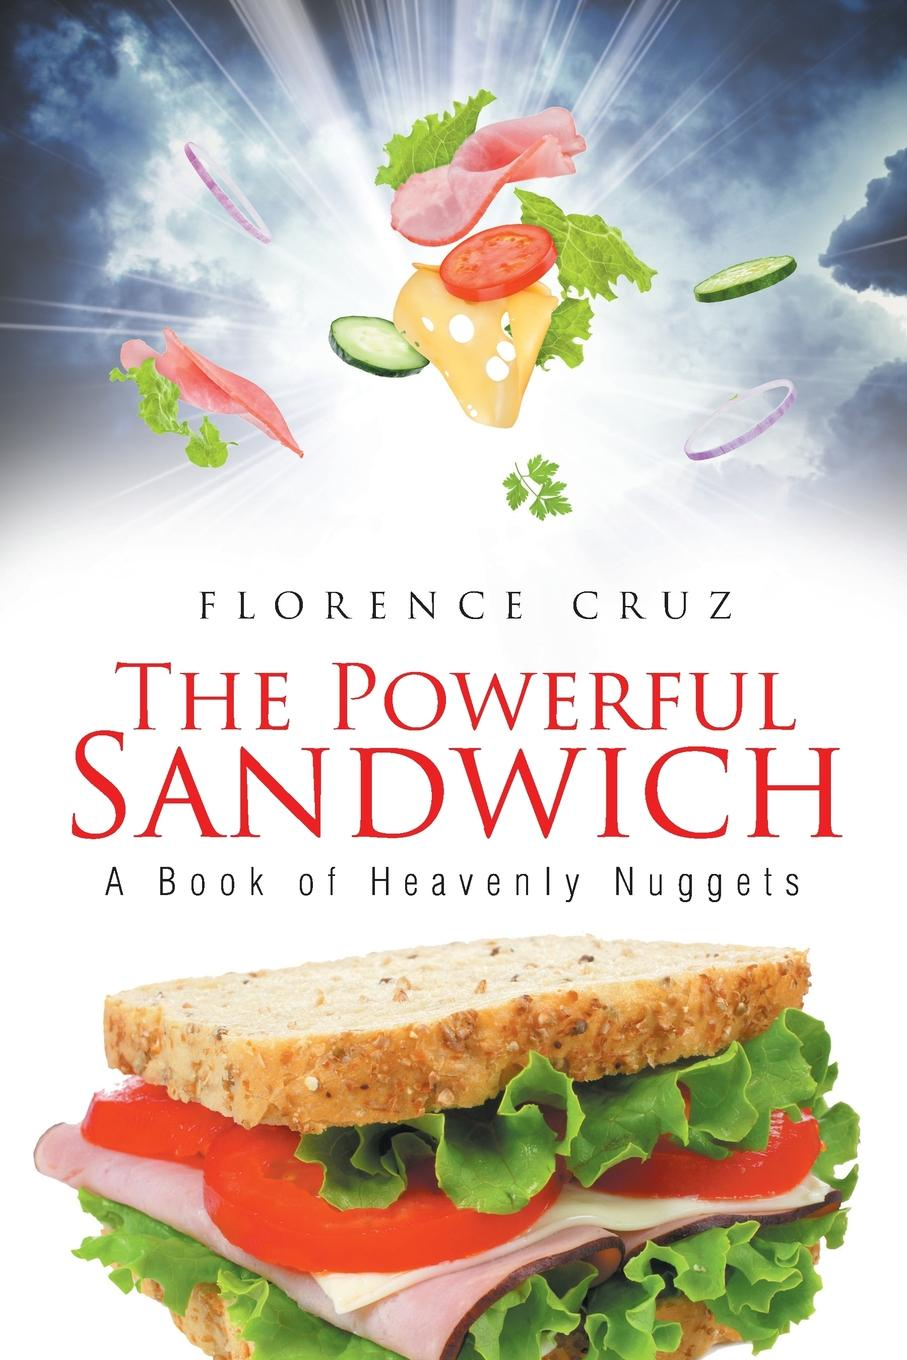 Florence Cruz The Powerful Sandwich. A Book of Heavenly Nuggets the 7440 series of integrated circuit tester ic tester can judge whether the logic gate is good or bad